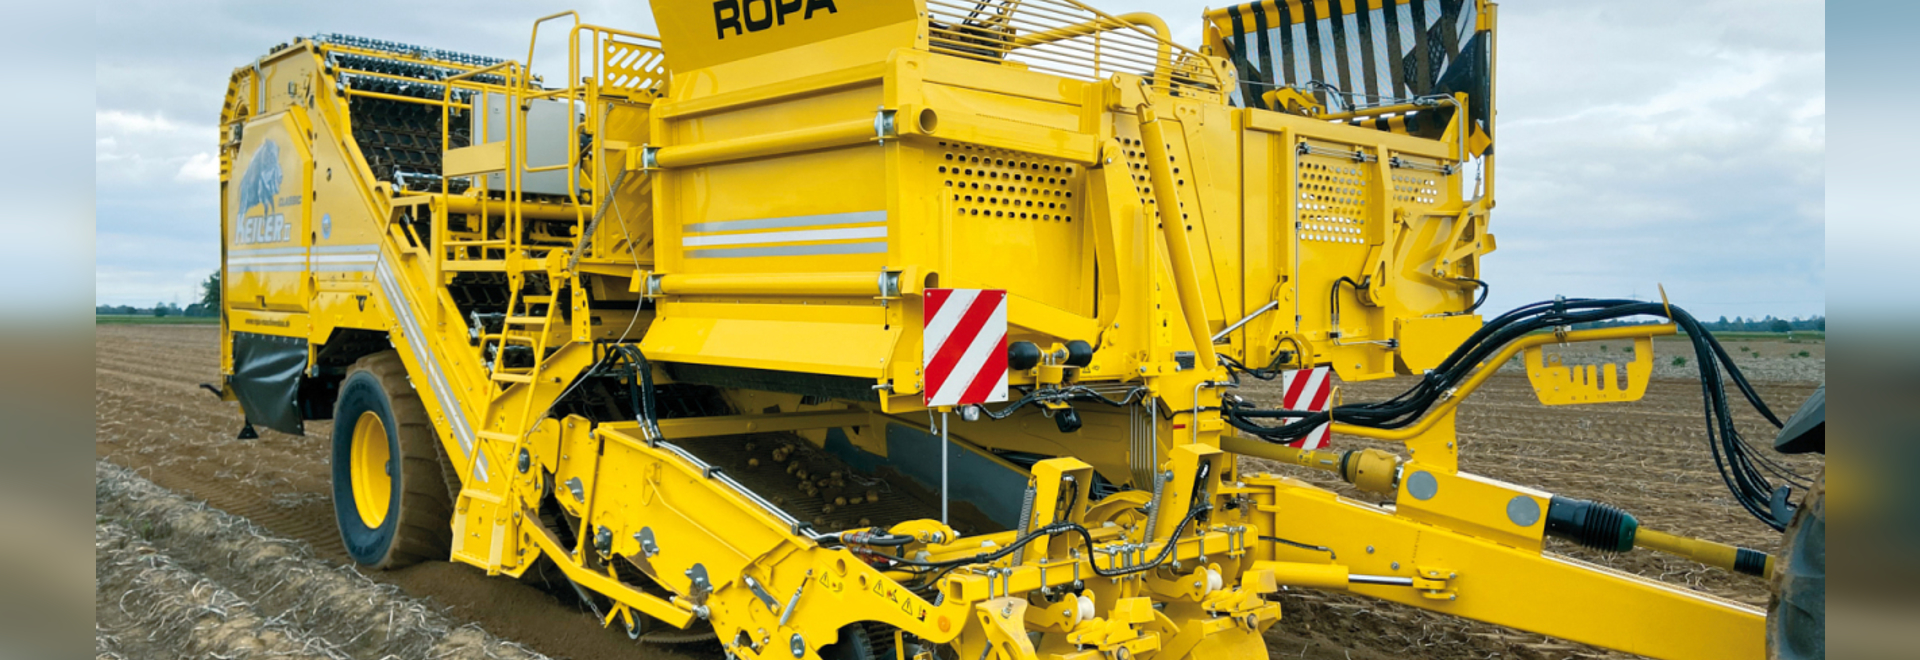 ROPA is focusing on further growth in the potato market